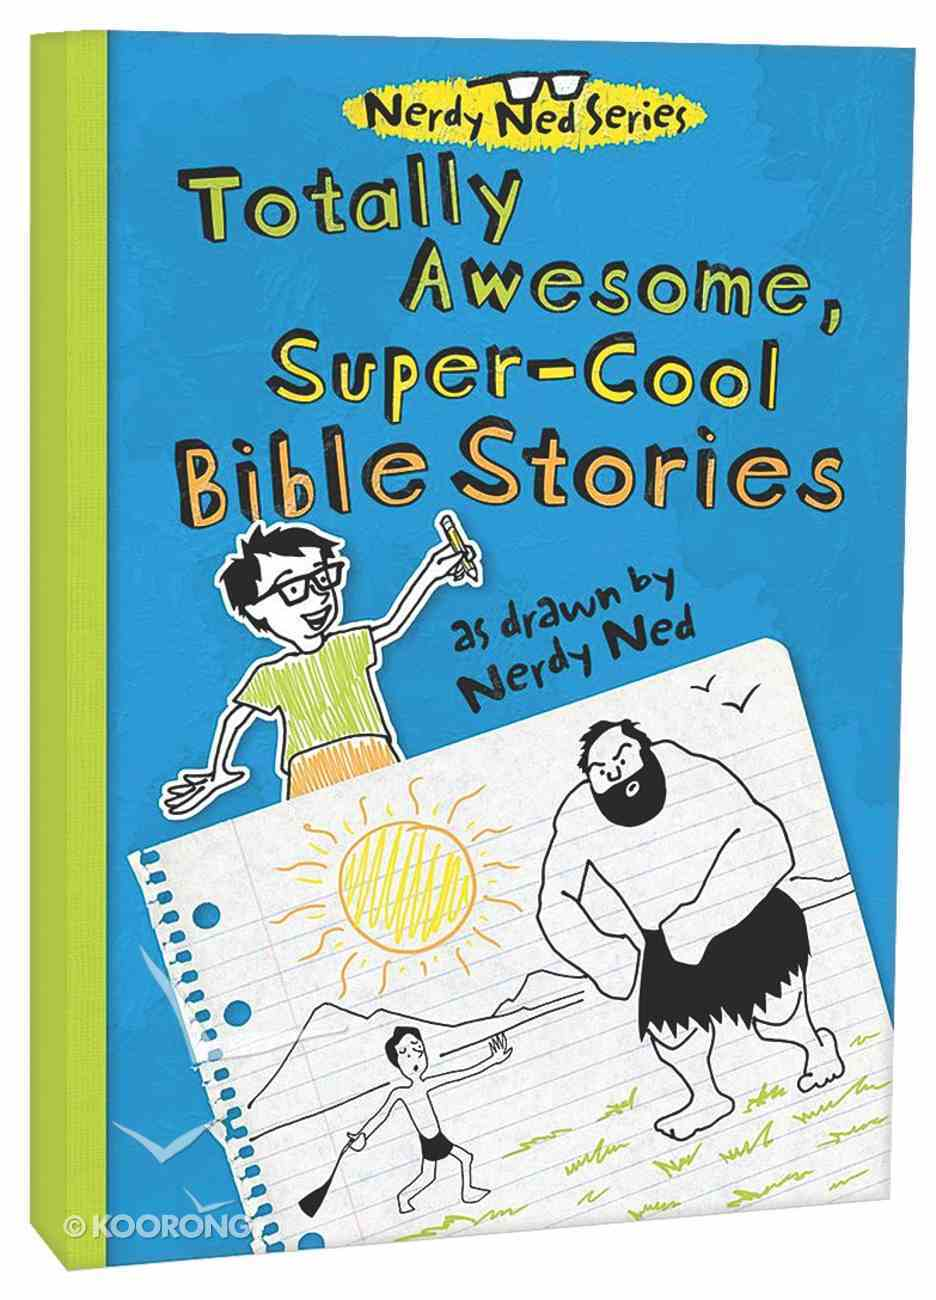 Totally Awesome, Super-Cool Bible Stories (Nerdy Ned Series) Hardback